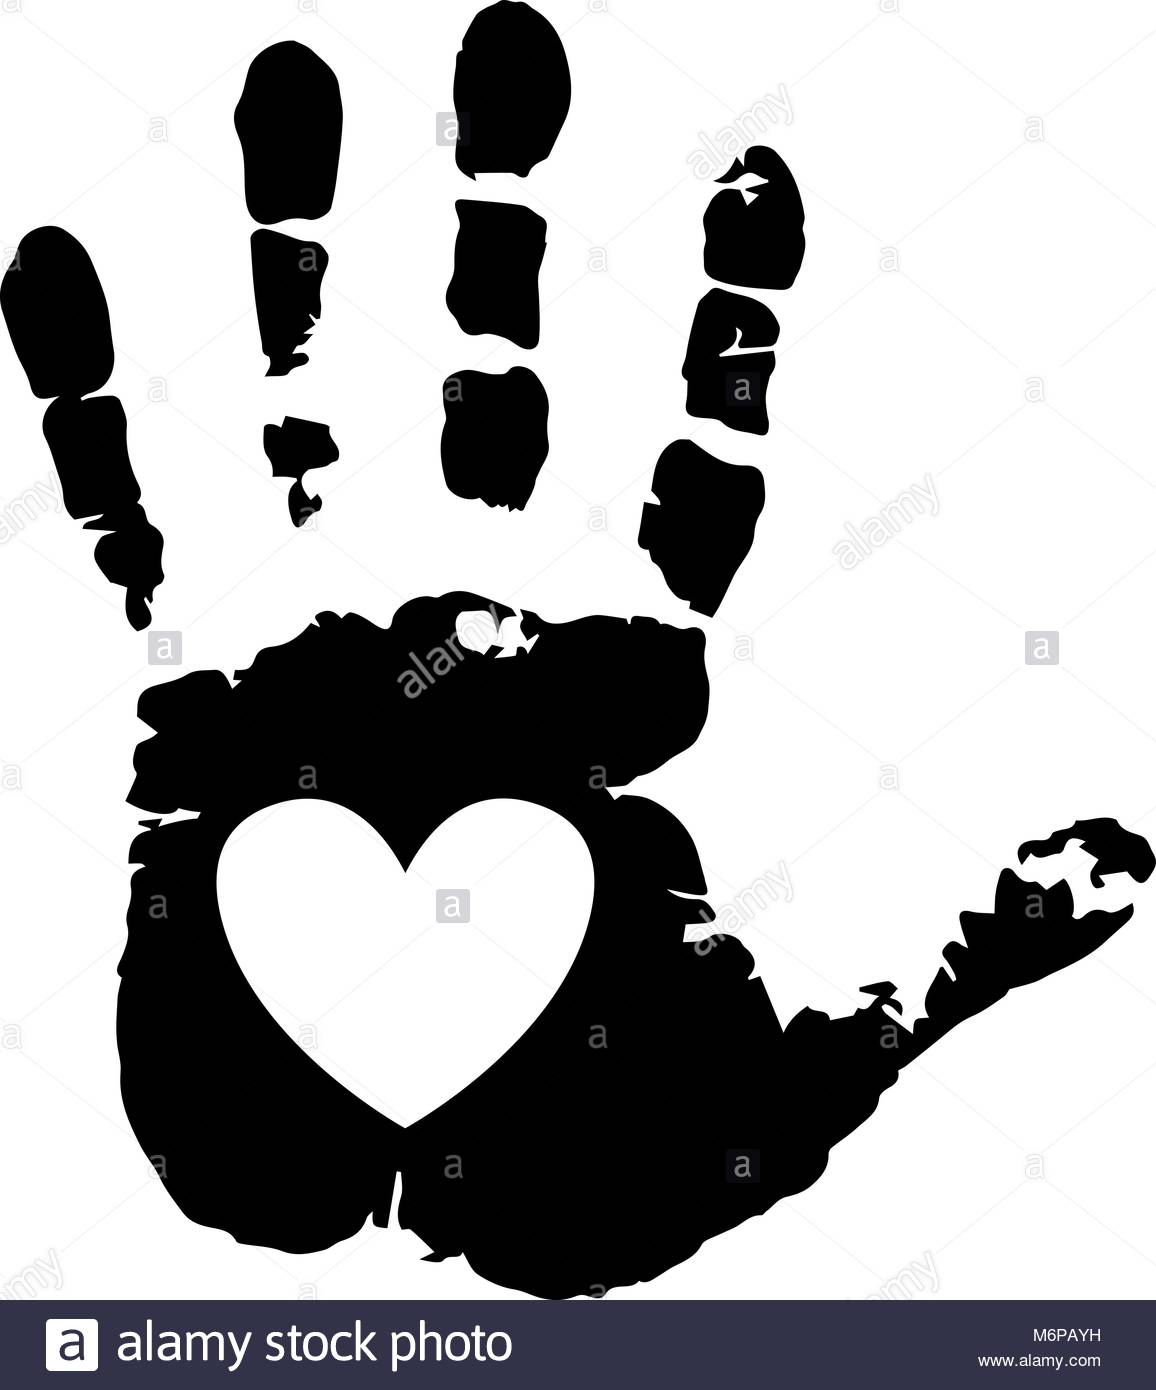 1156x1390 Palm Heart Black And White Stock Photos Amp Images